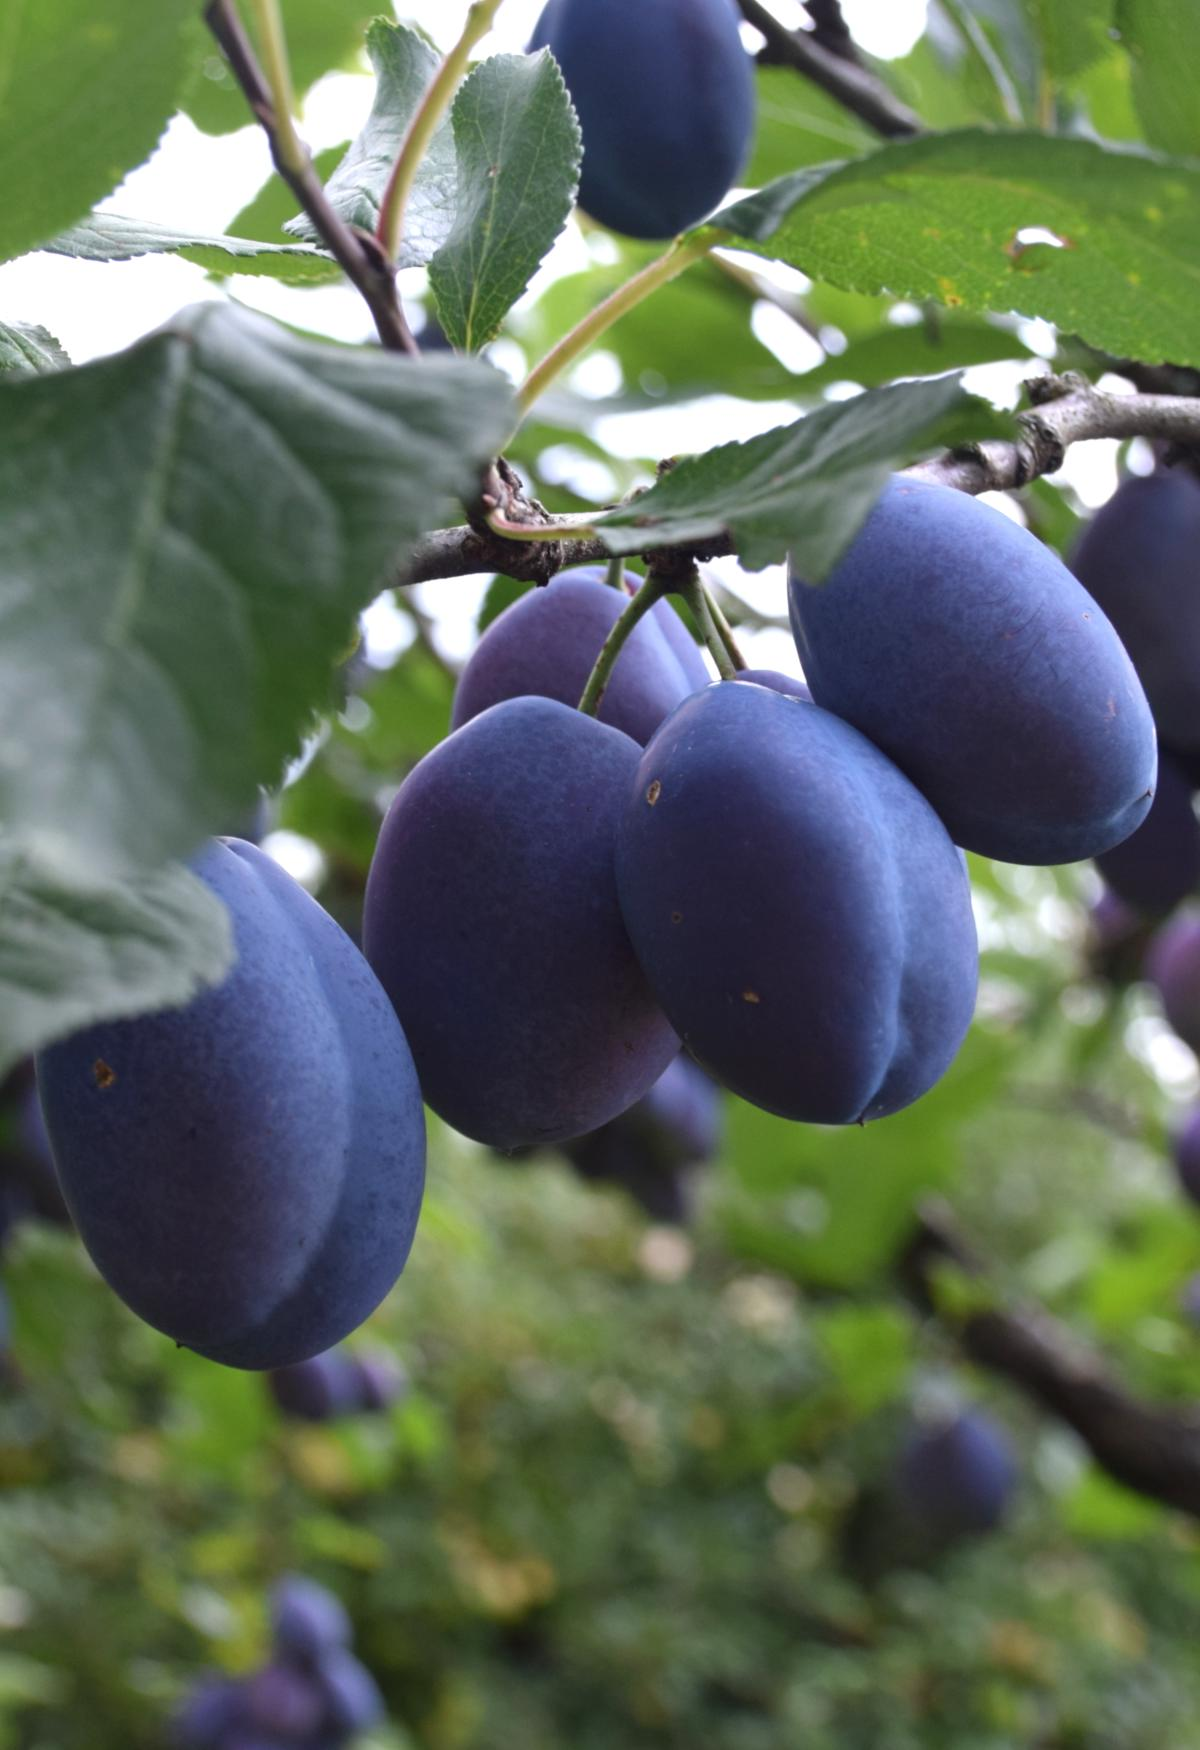 Damson plums on a branch